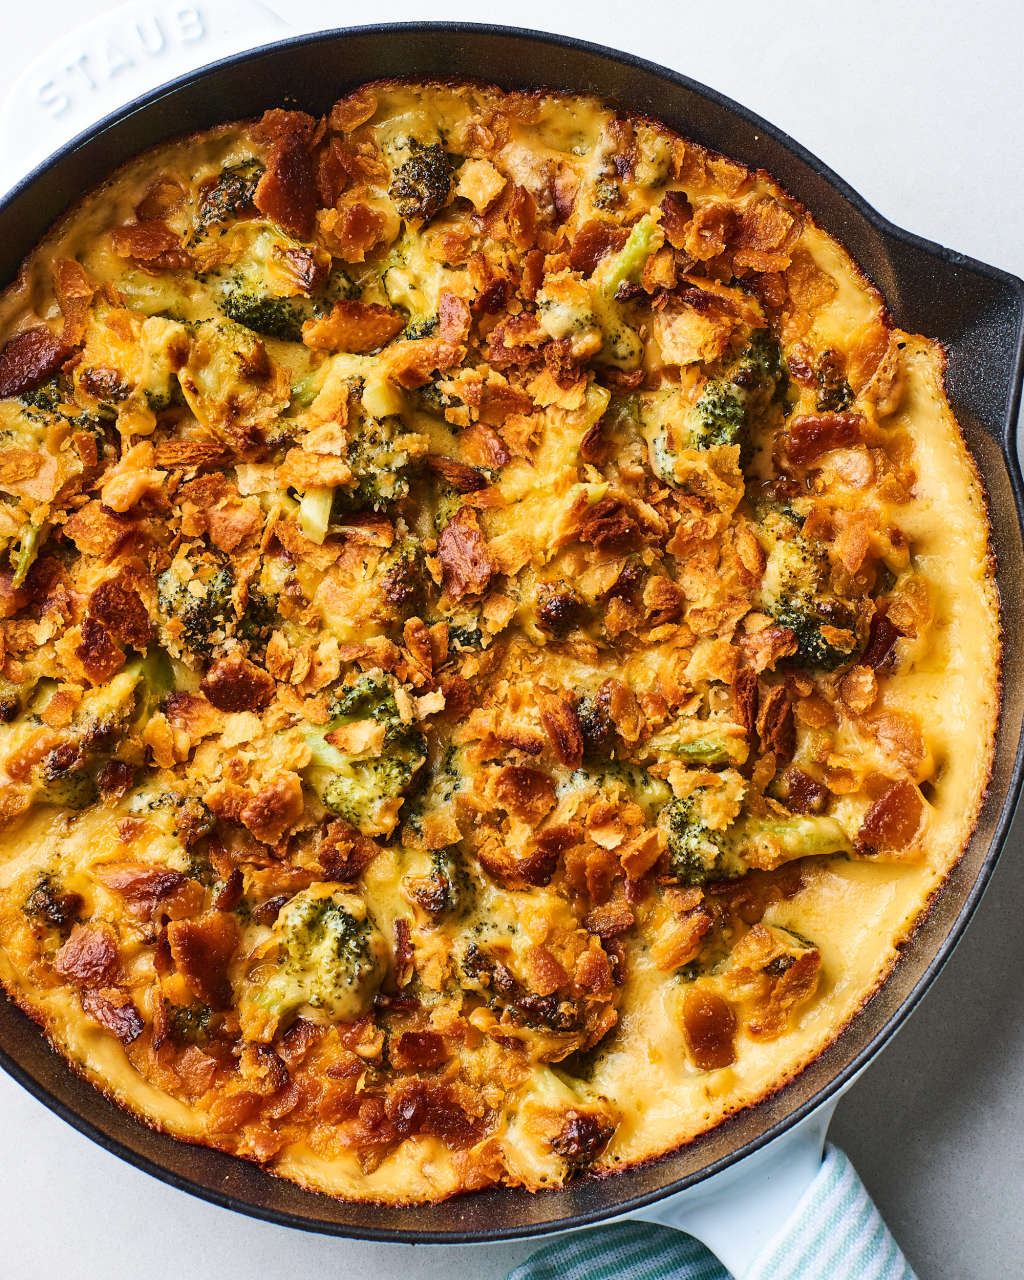 Here's a Broccoli-Cheese Casserole That Everyone Will Love